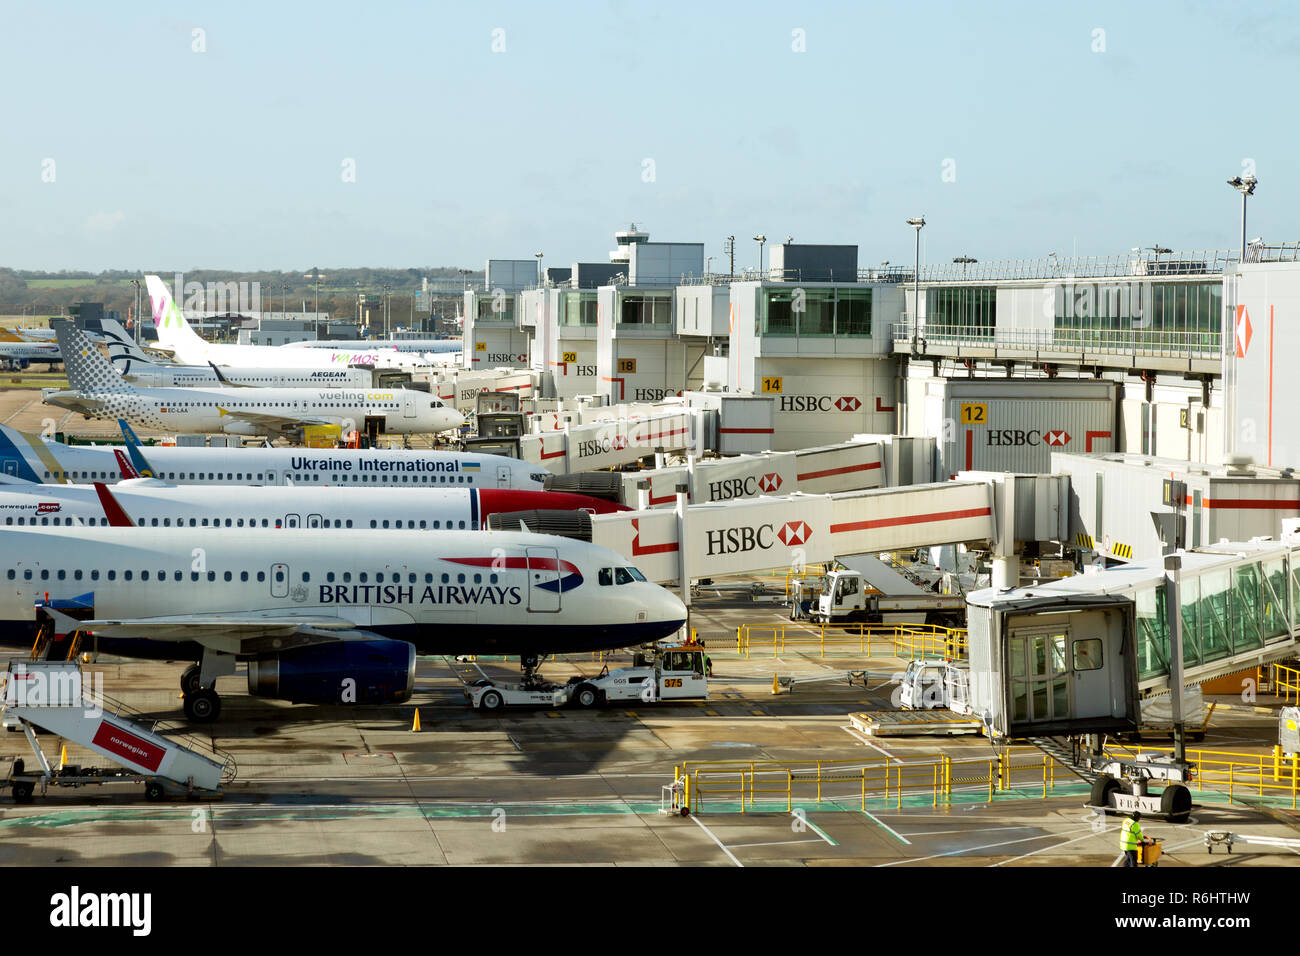 Planes, Gatwick Airport - airplanes at South terminal, Gatwick airport, UK - Stock Image